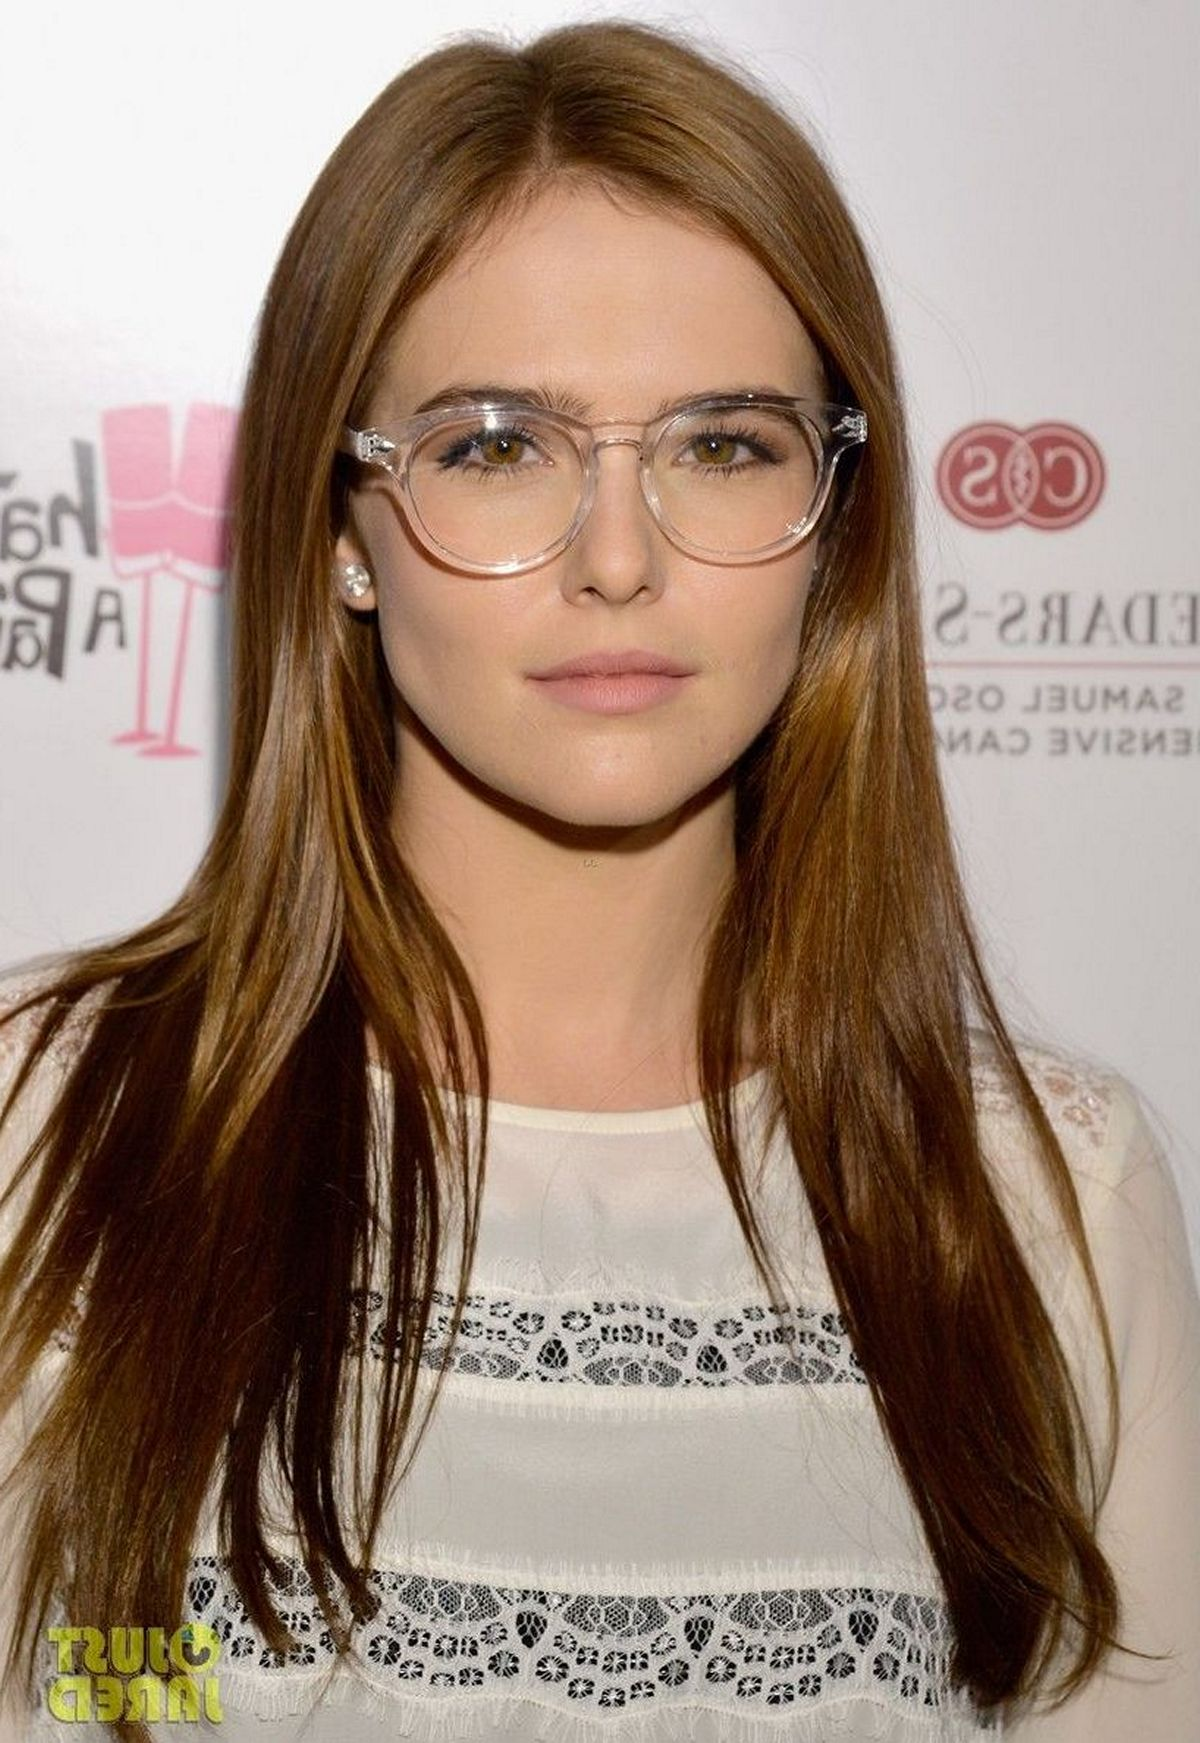 2524120759 Popular 51 Clear Glasses Frame for Women s Fashion Ideas